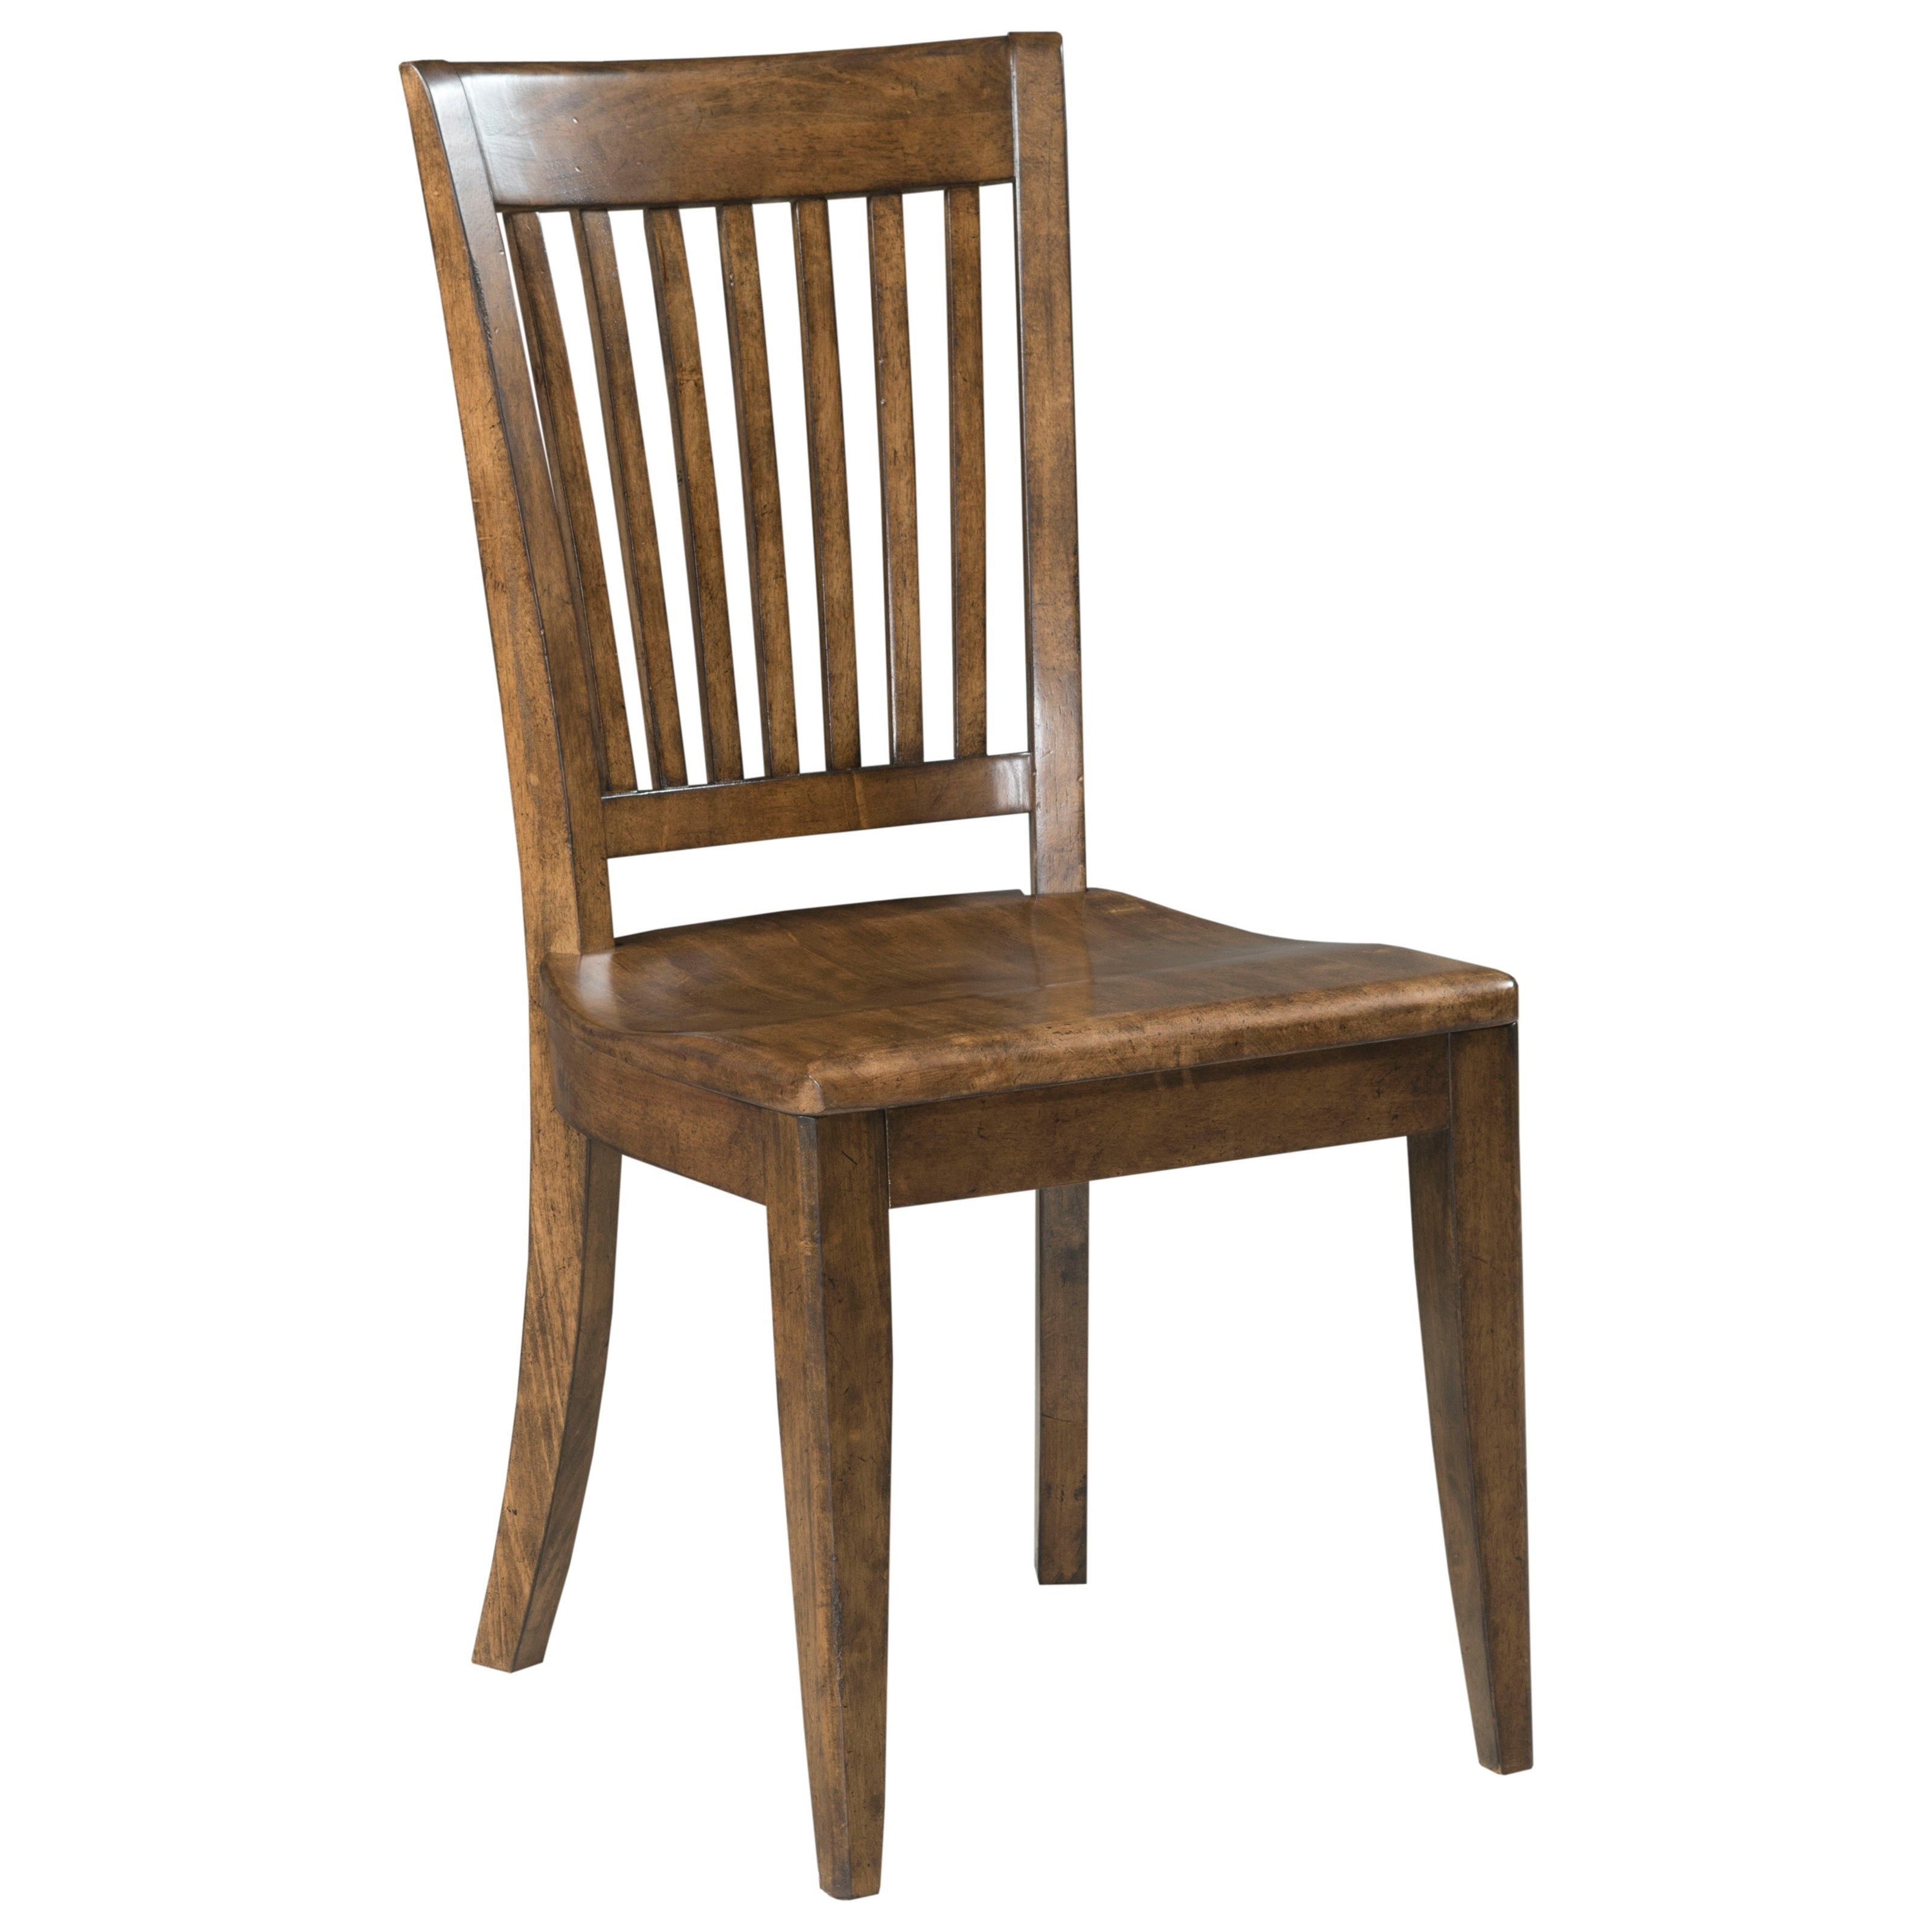 Slatted Back Chairs ~ Kincaid furniture the nook solid wood slat back chair